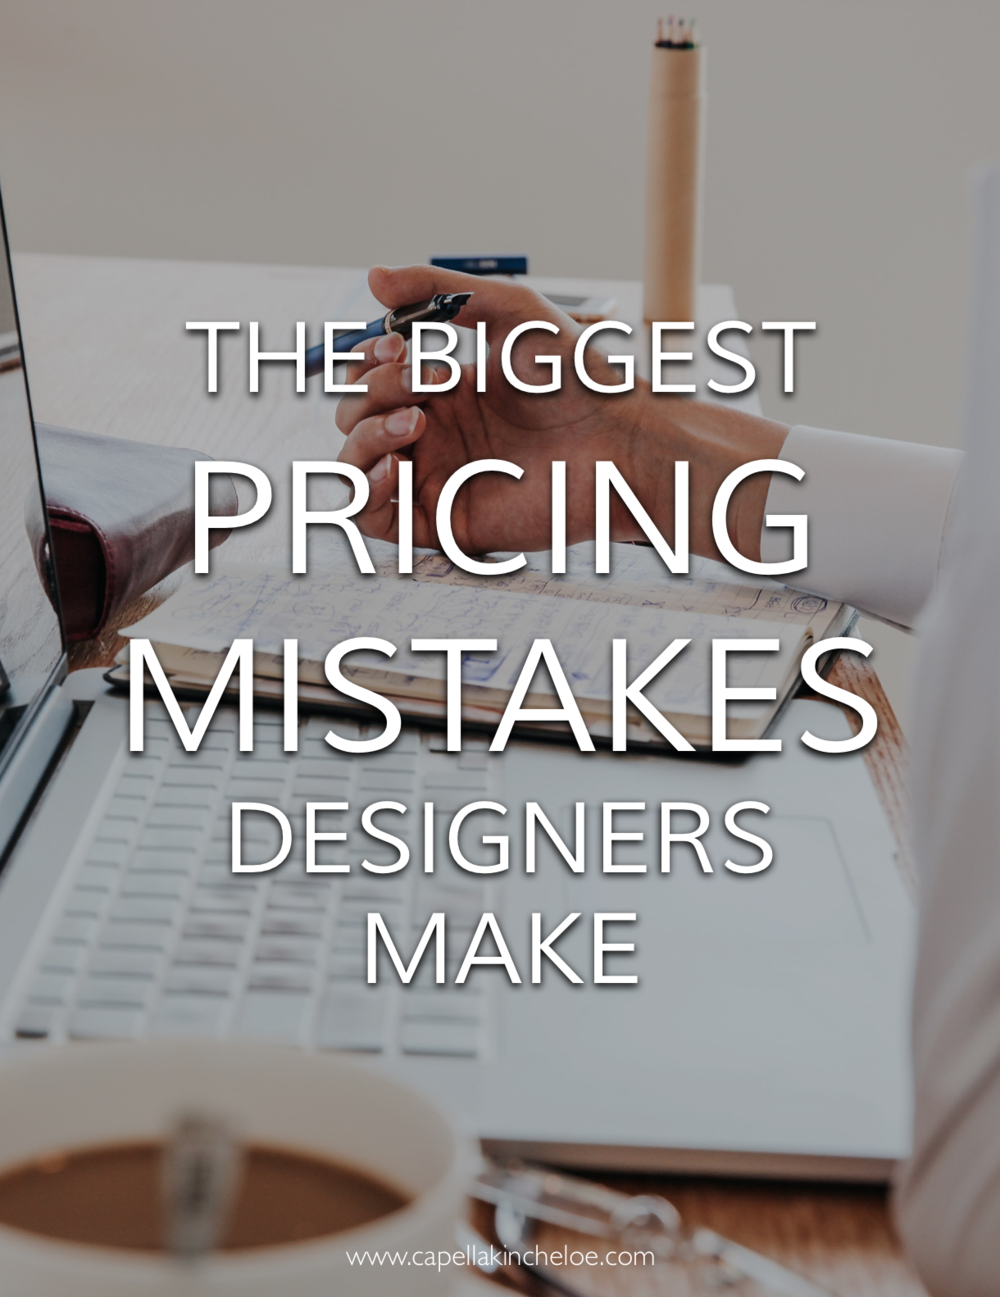 Here are the biggest mistakes that interior designers make when pricing interior design services and running an interior design business.  Learn what they are and how to avoid them like a boss!